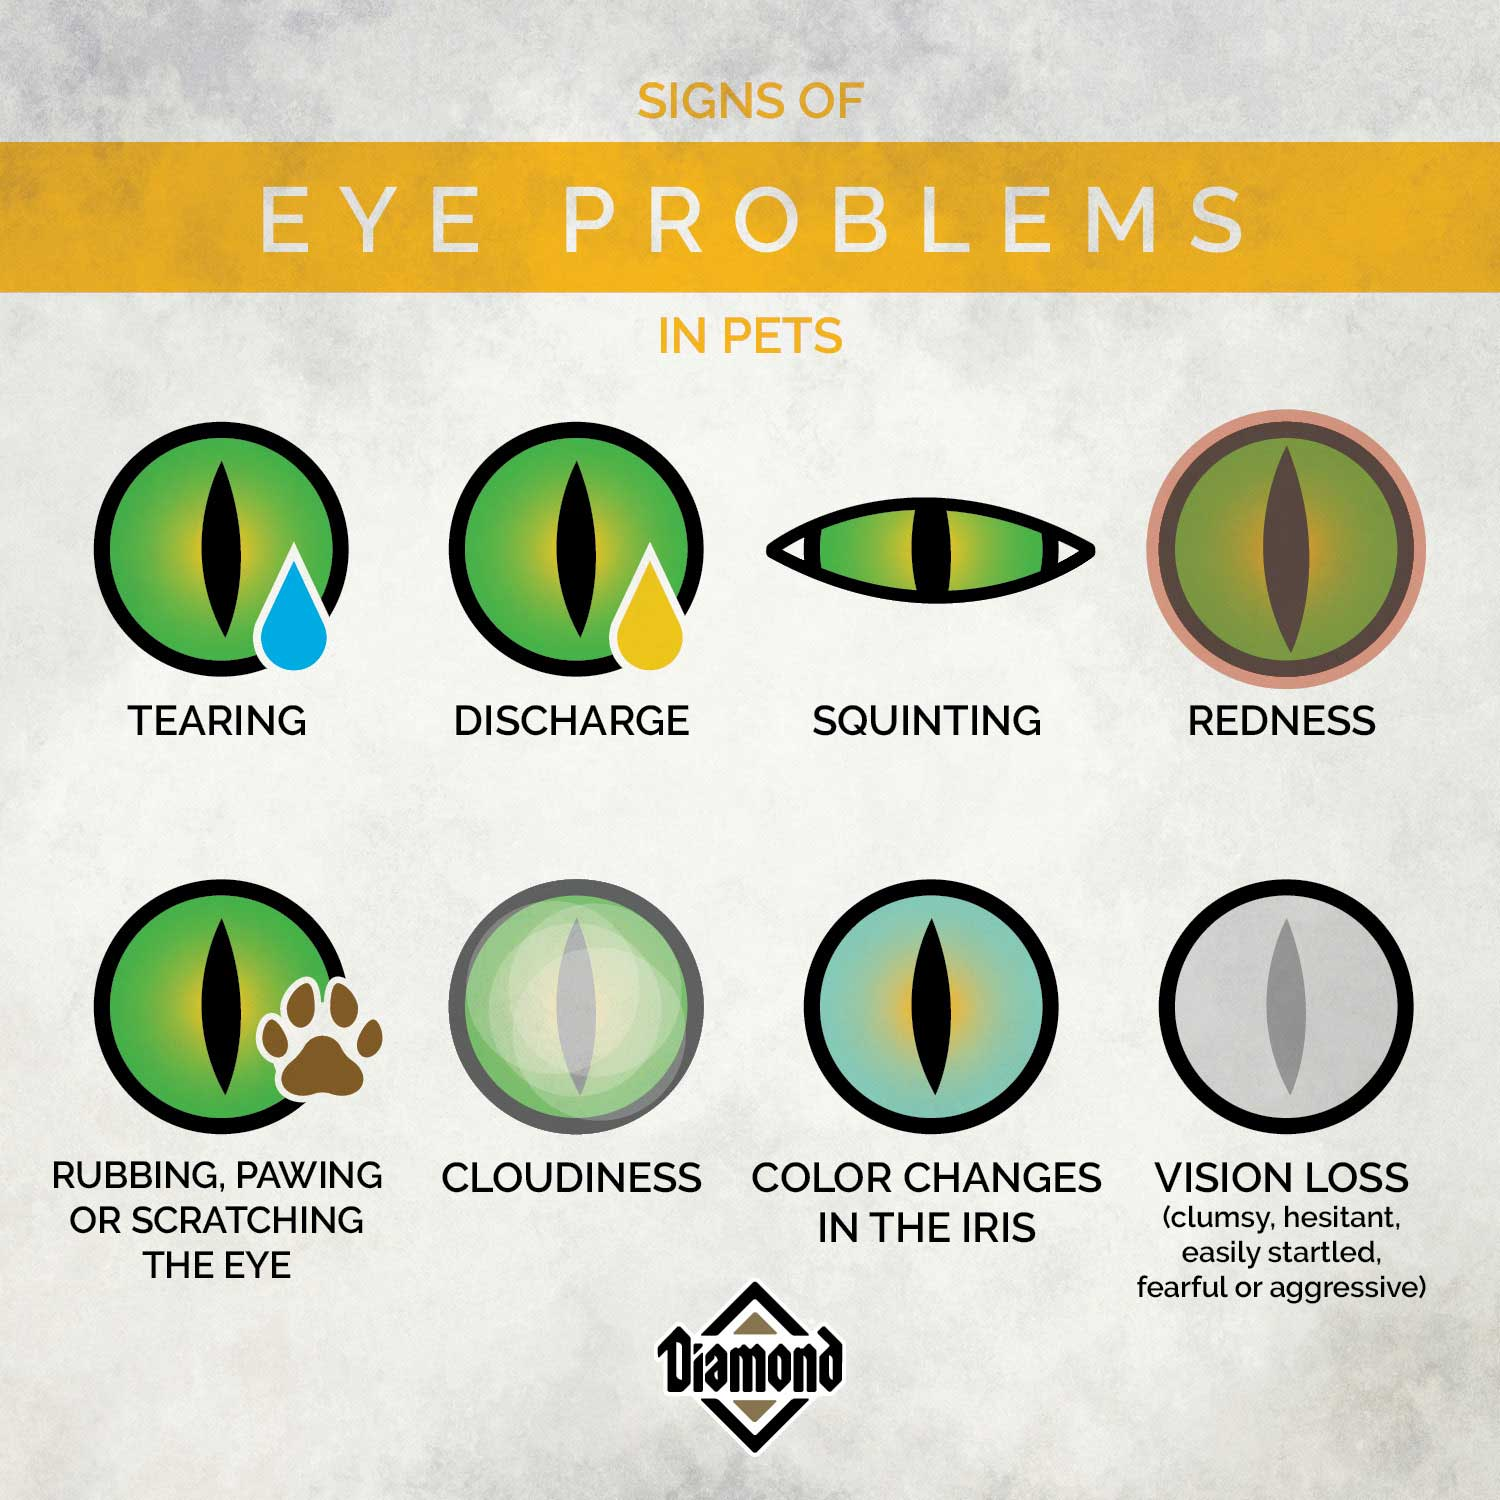 Signs of Eye Problems in Pets | Diamond Pet Foods